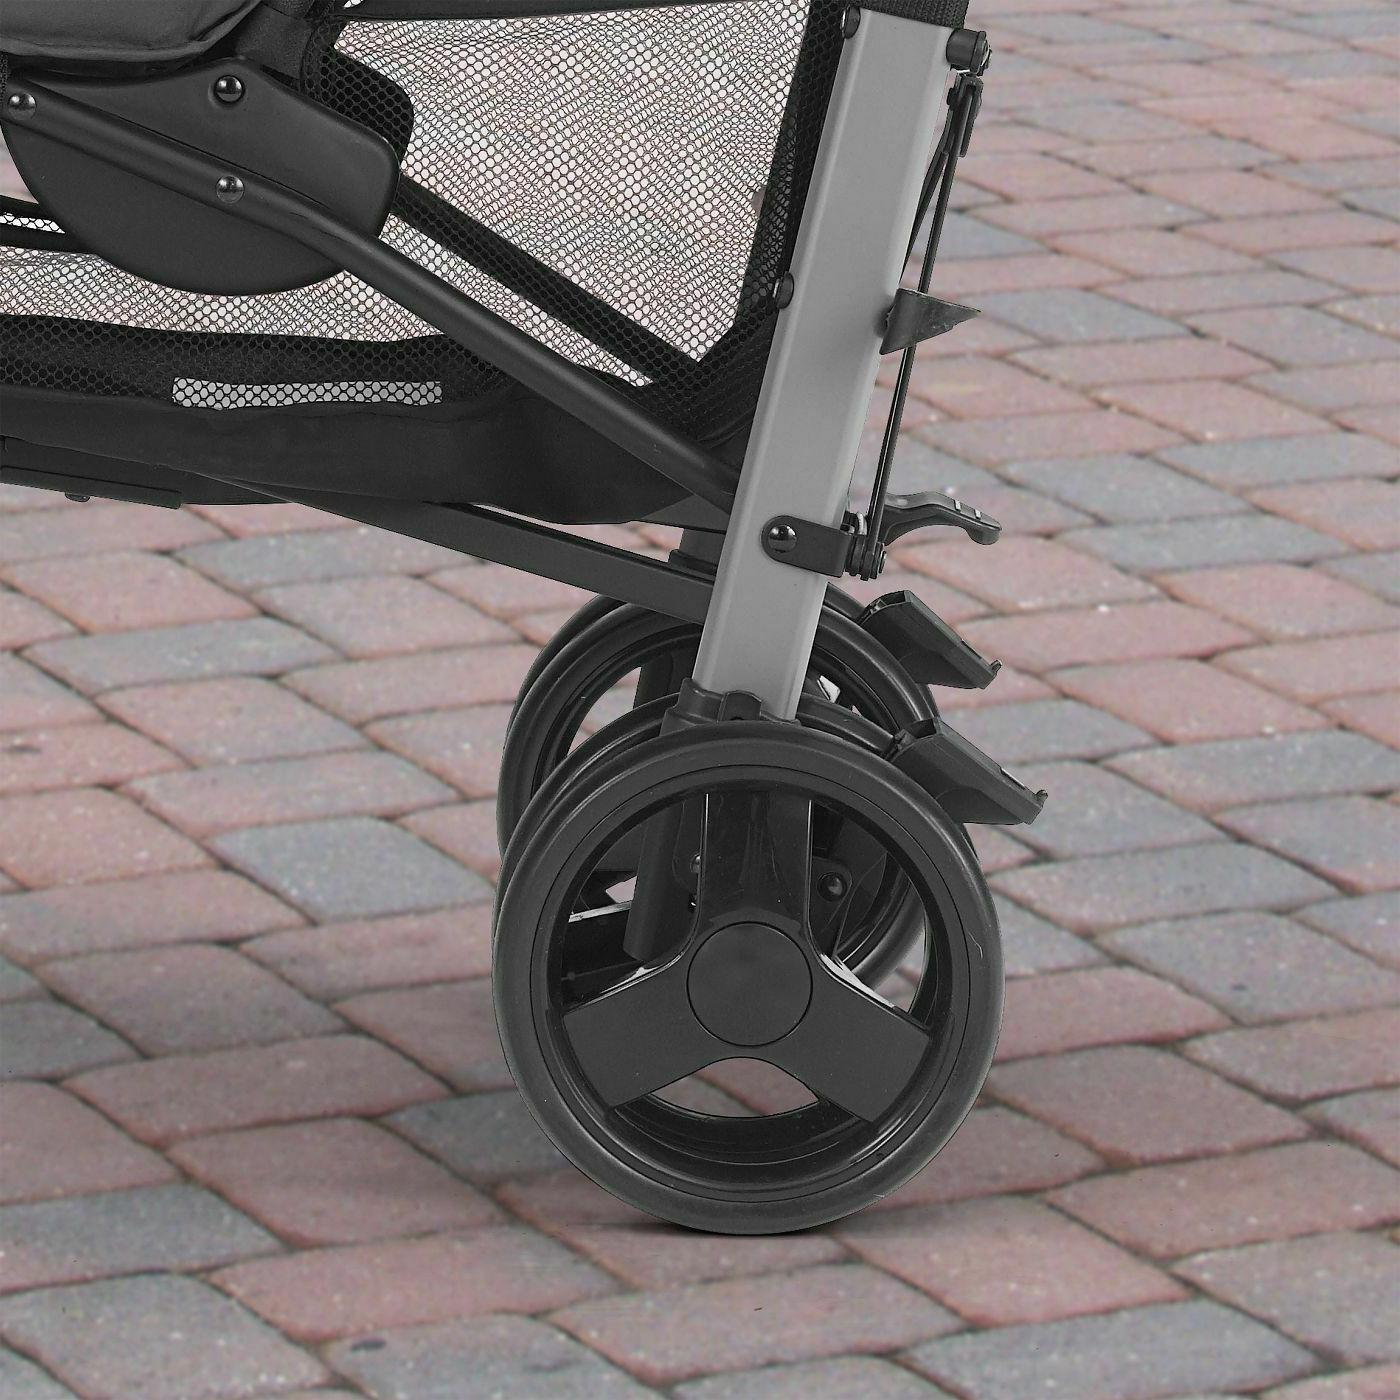 Chicco Liteway Stroller w/ Fold Easy Transport, Astral